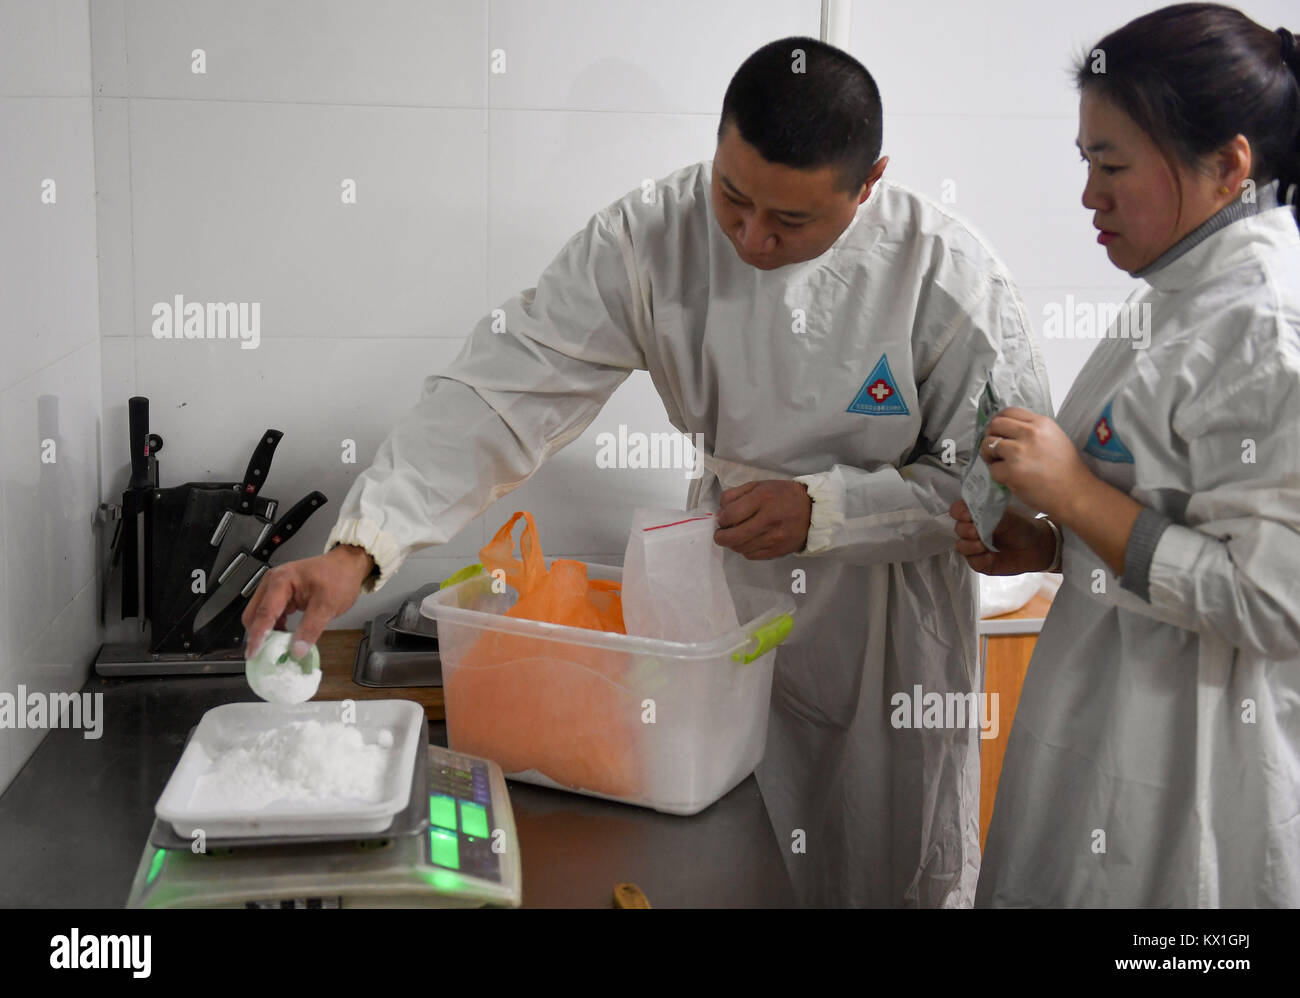 Changchung, China. 6th January, 2018. (180106) -- CHANGCHUN, Jan. 6, 2018 (Xinhua) -- Feeders prepare dietary supplements - Stock Image